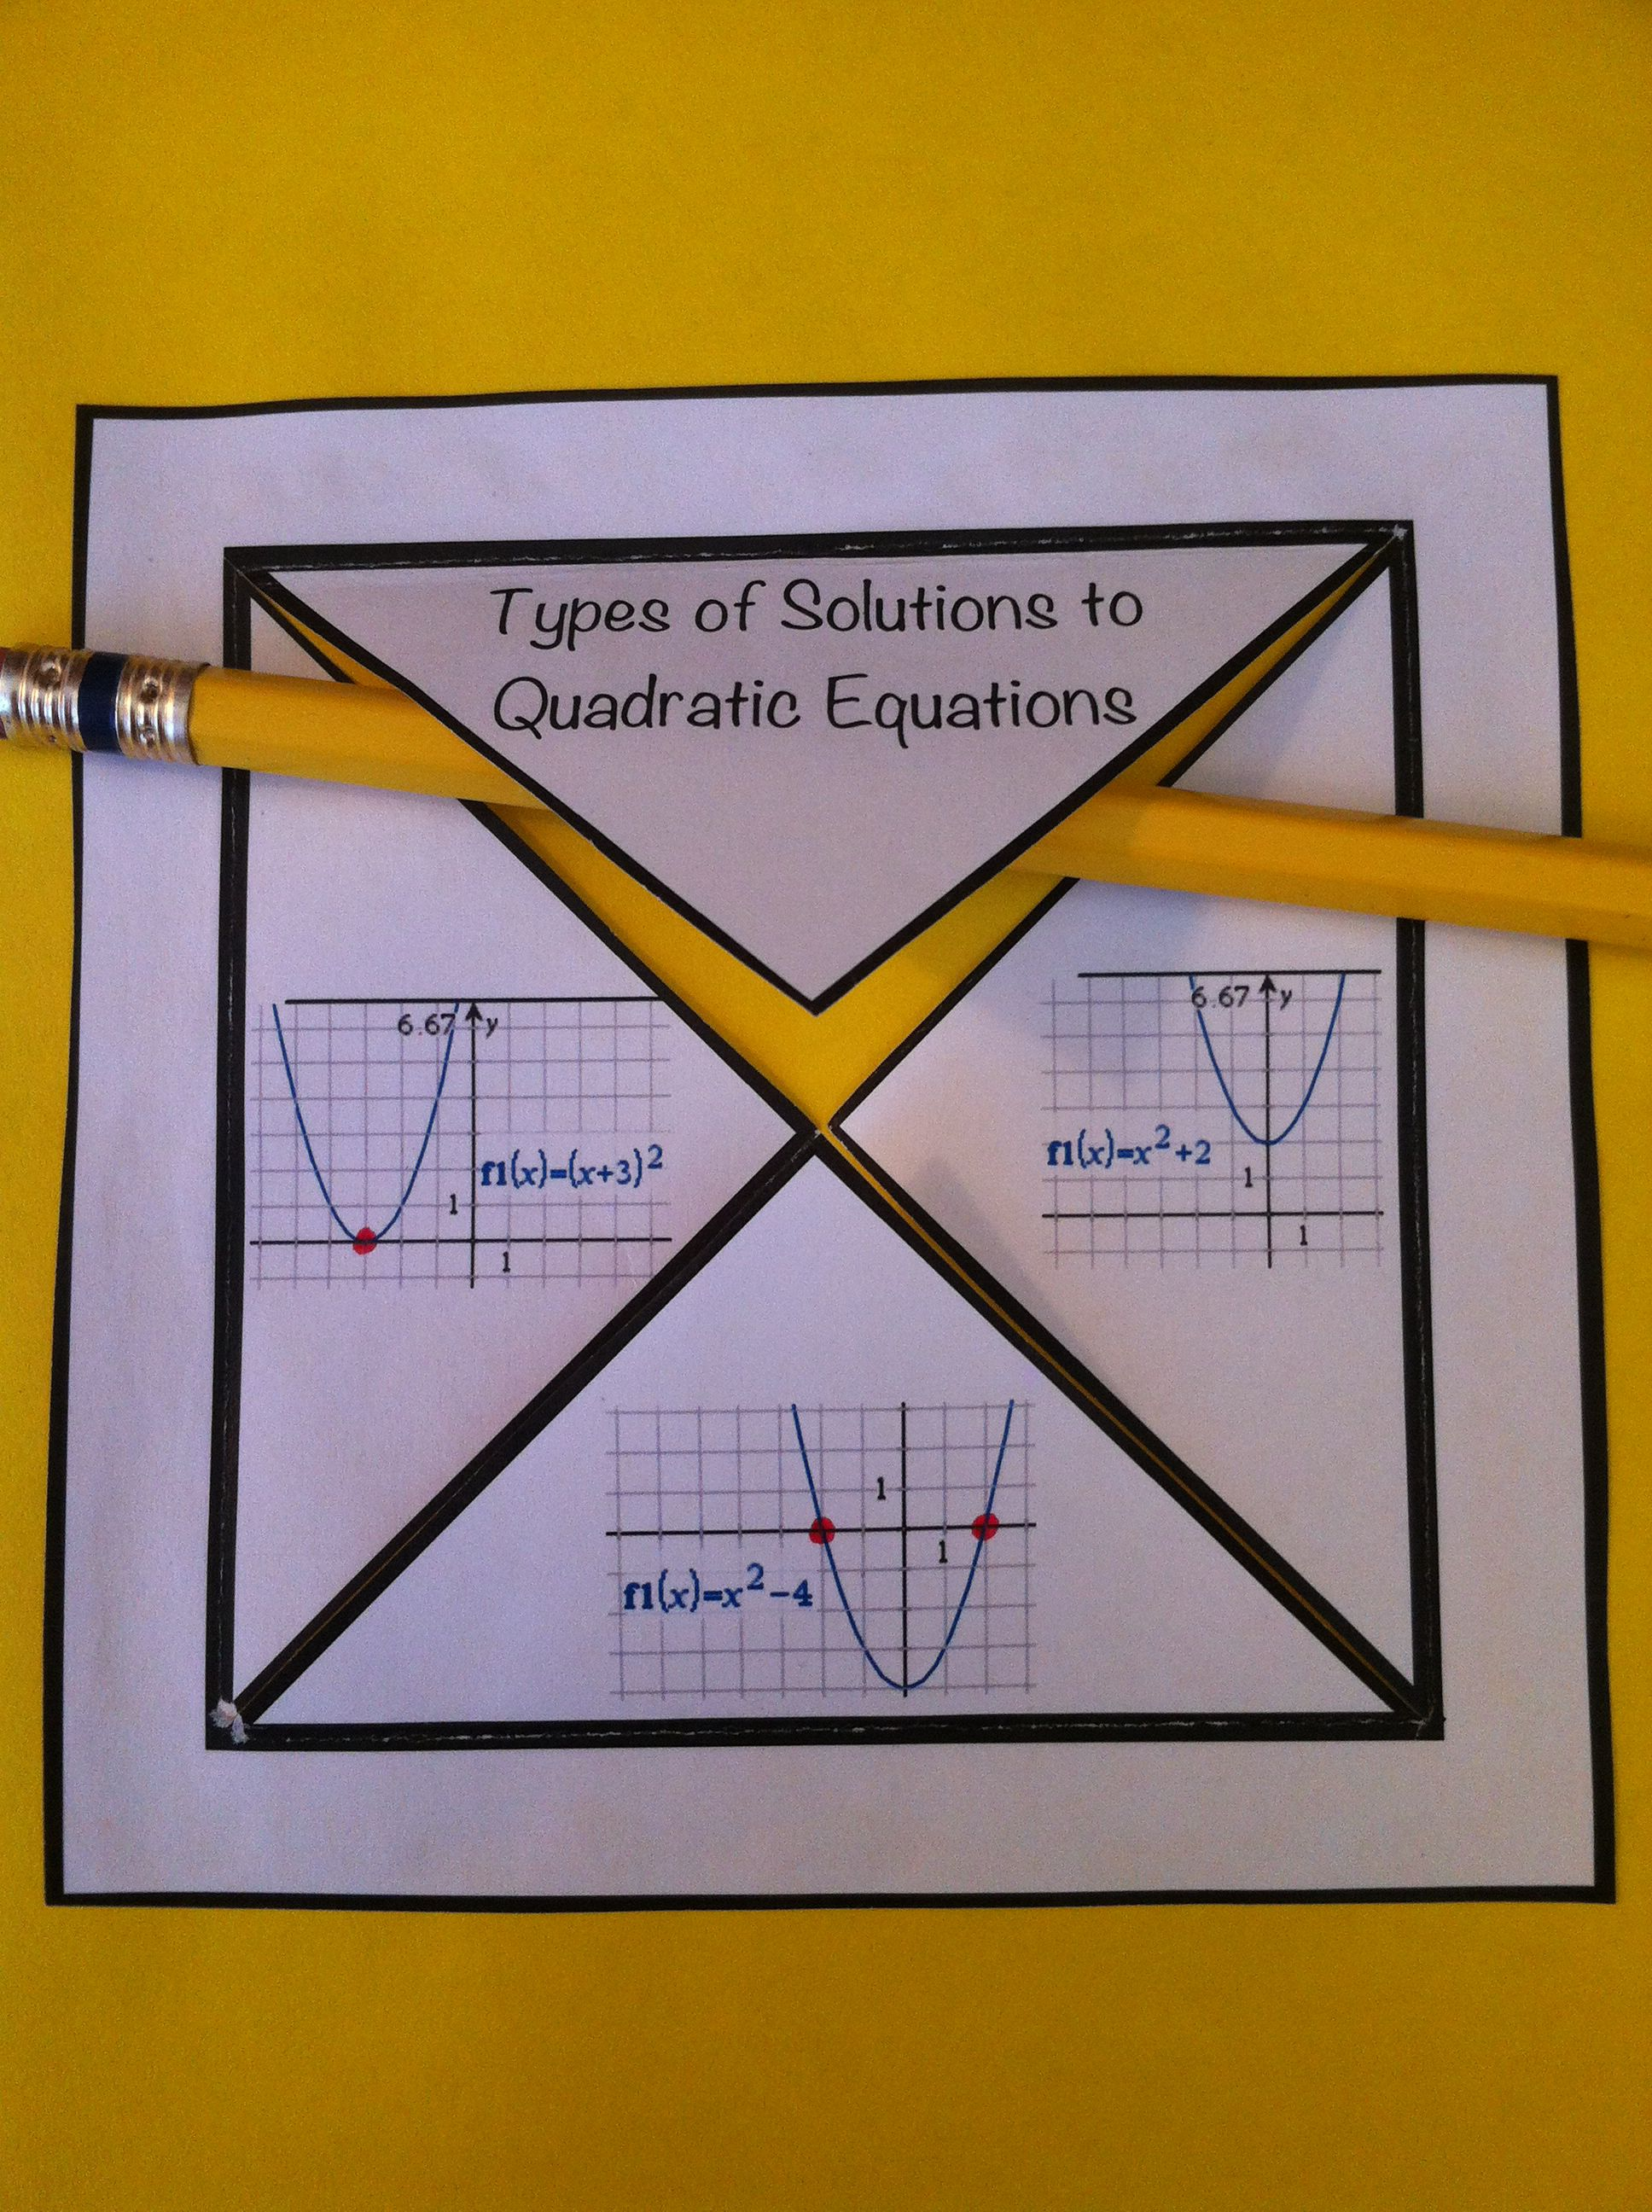 Types of Solutions to Quadratic Equations, with graphs showing ...